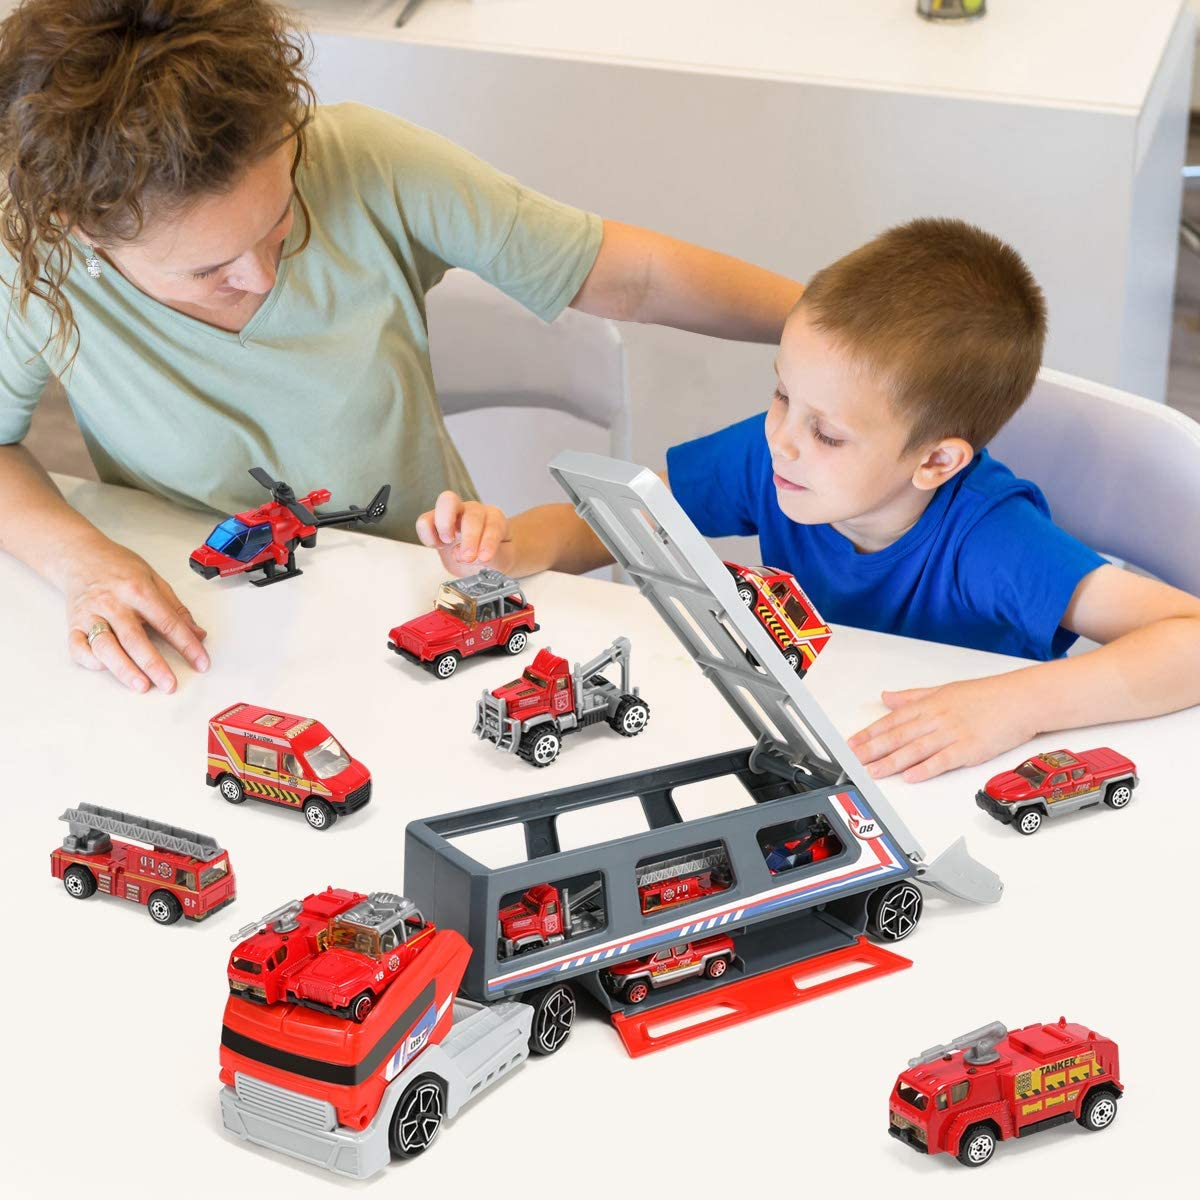 Transport Car Fire Truck Die-cast Fire Engine Car in Transport Vehicle,Mini Rescue Emergency Double Side Truck Toys for Kids,Boy Girl Party Favors Geyiie Carrier Truck Toy